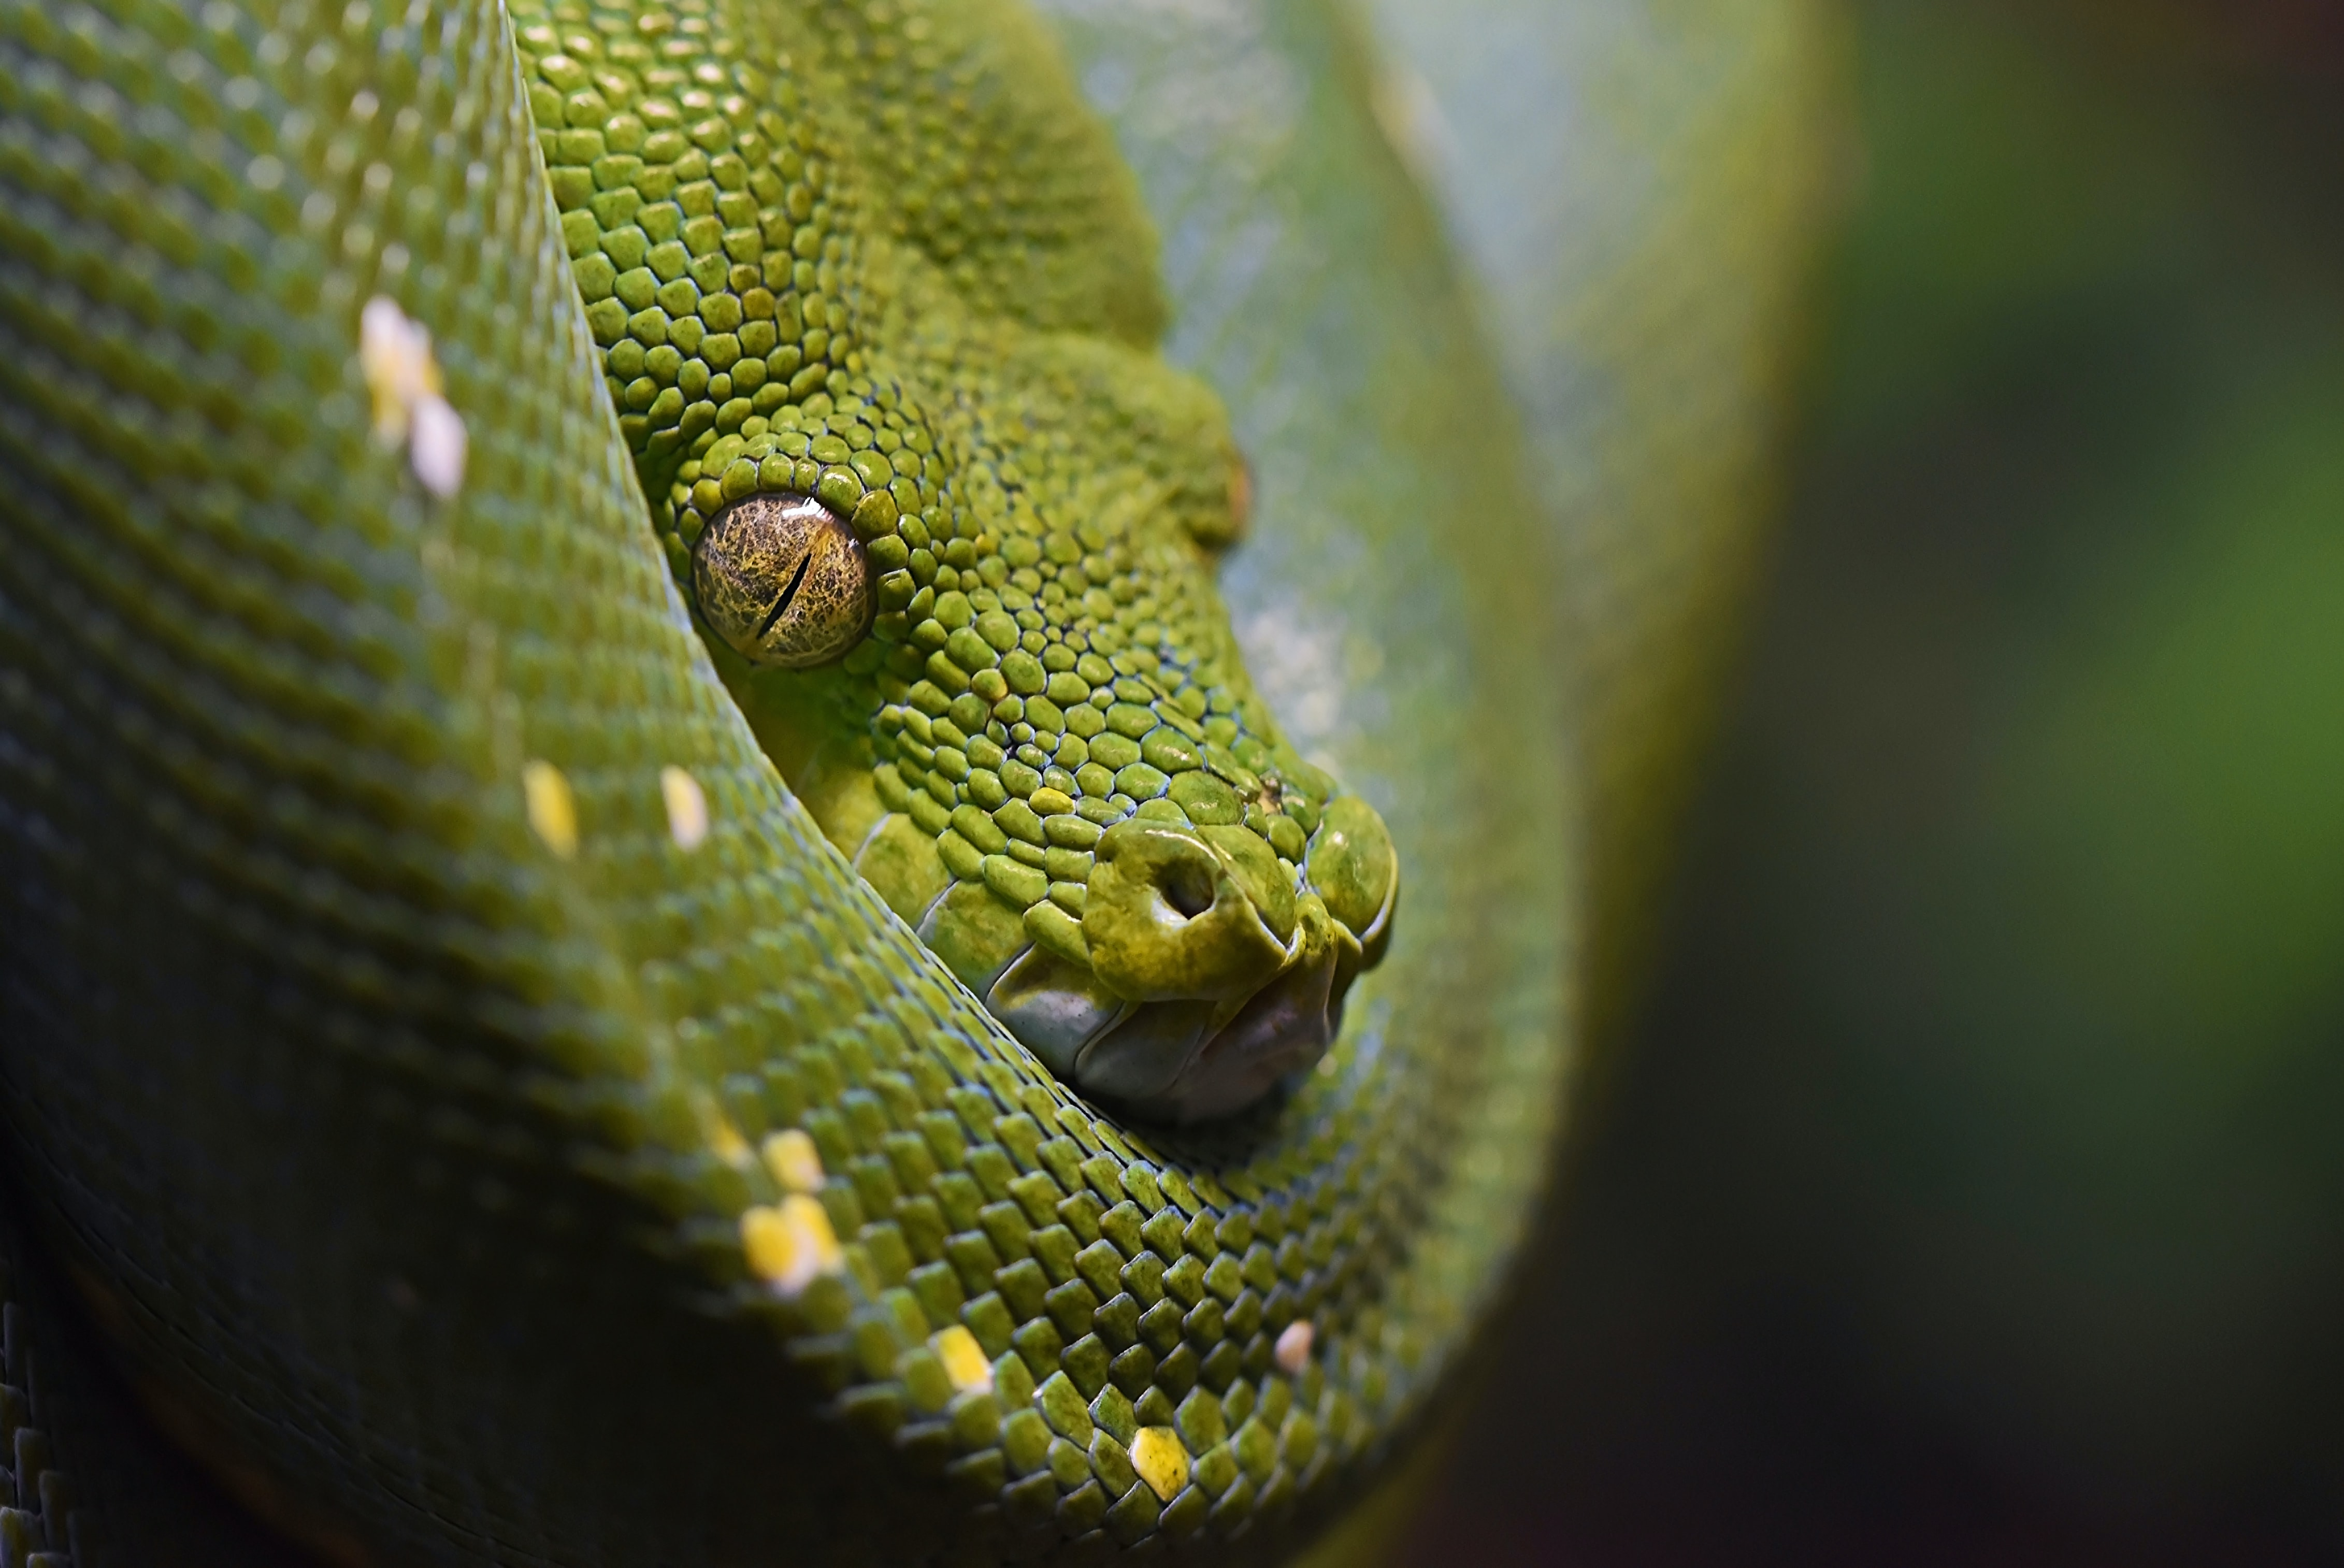 closeup photography green snake